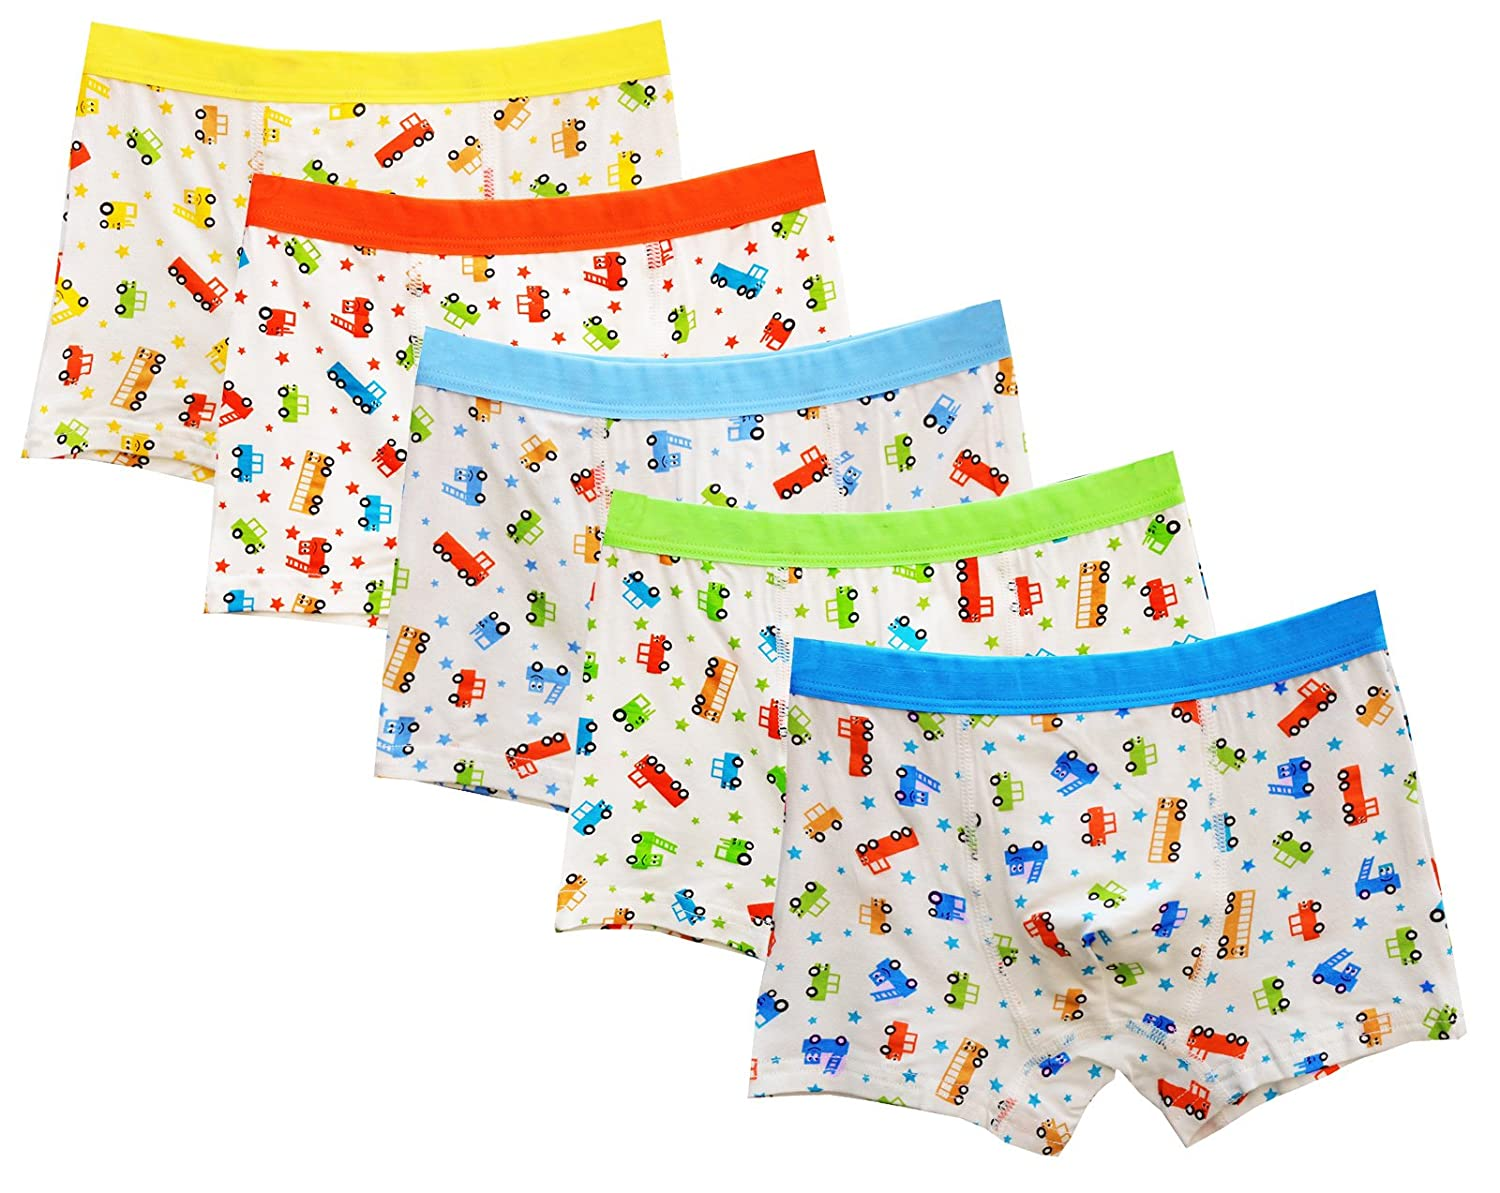 CHUNG Little Big Boys Soft Modal Boxer Briefs Underwear 5 Pack Dinosaur Print 2-7Y